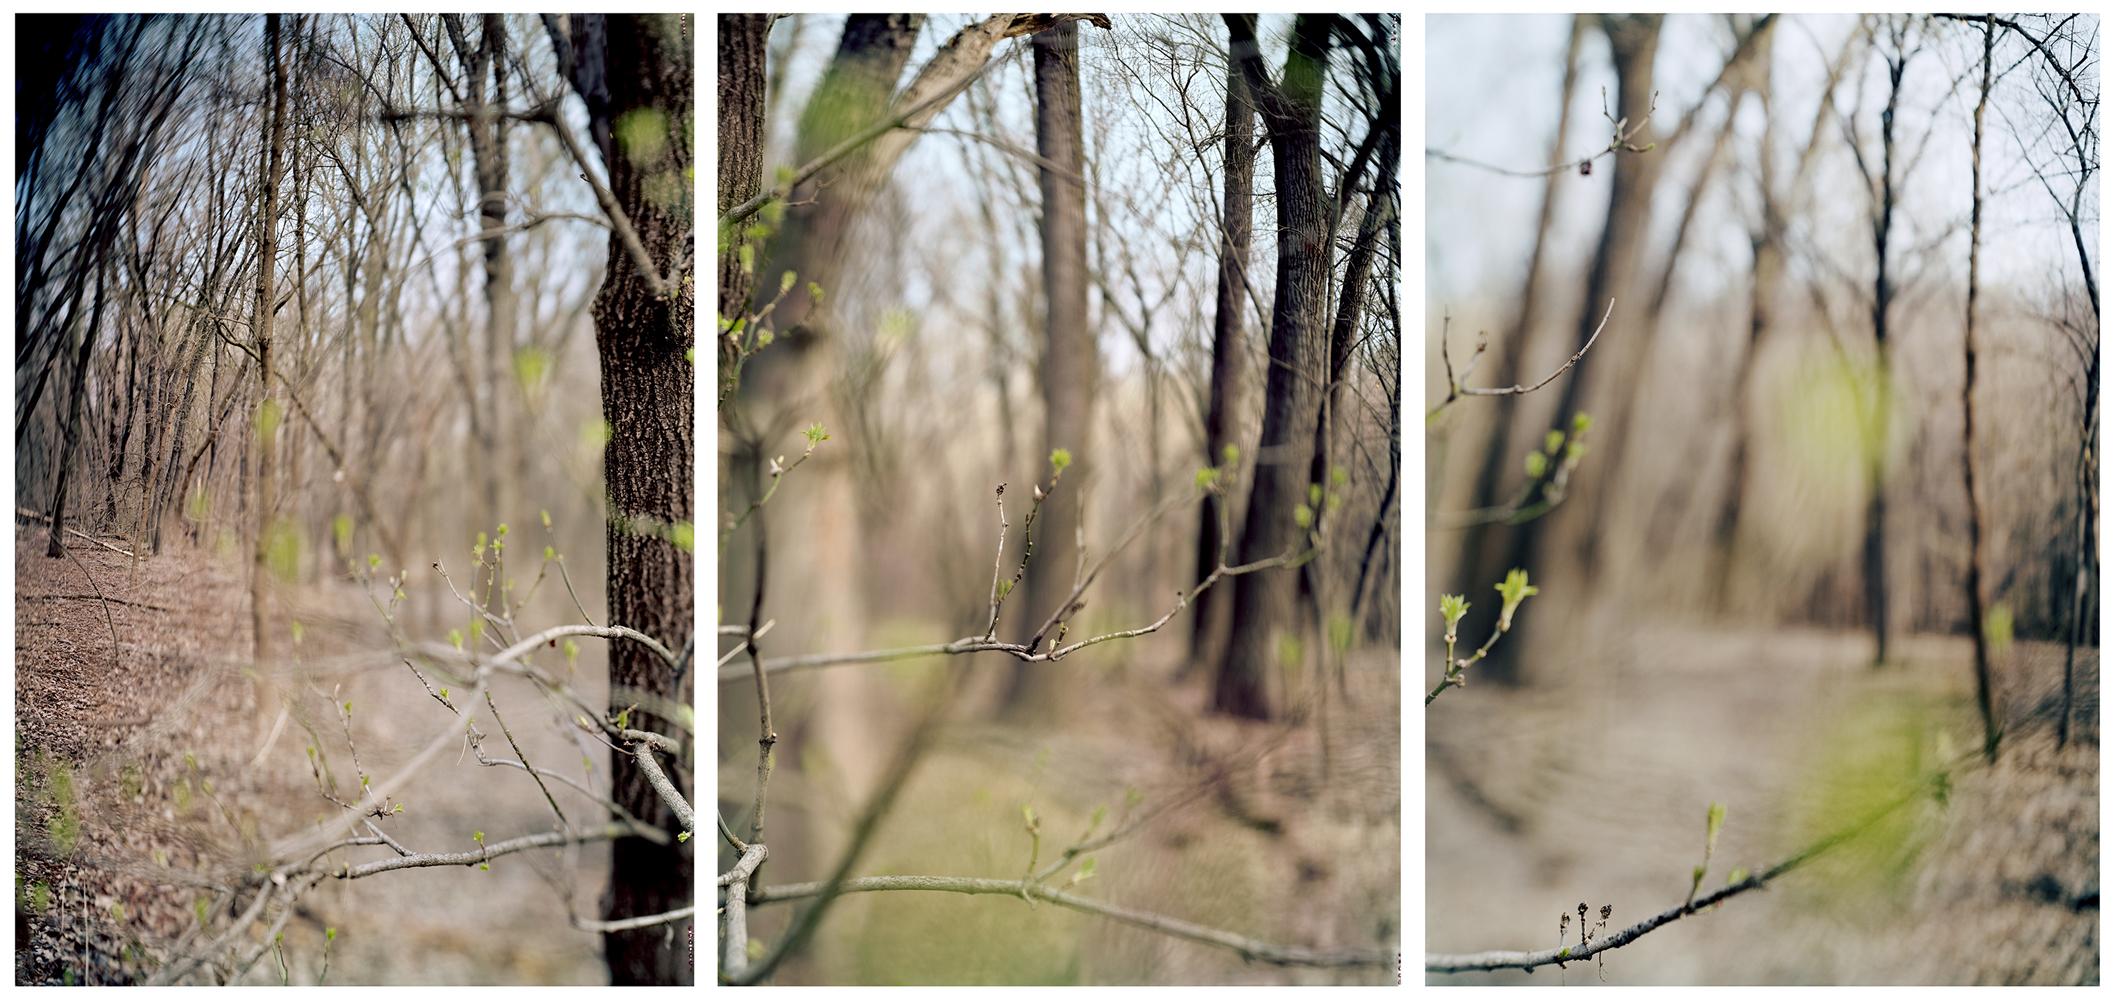 JoAnn Verburg, Hidden Falls, 2012, 3 – archival pigment prints, 24 x 58 inches, edition of 10, price on request